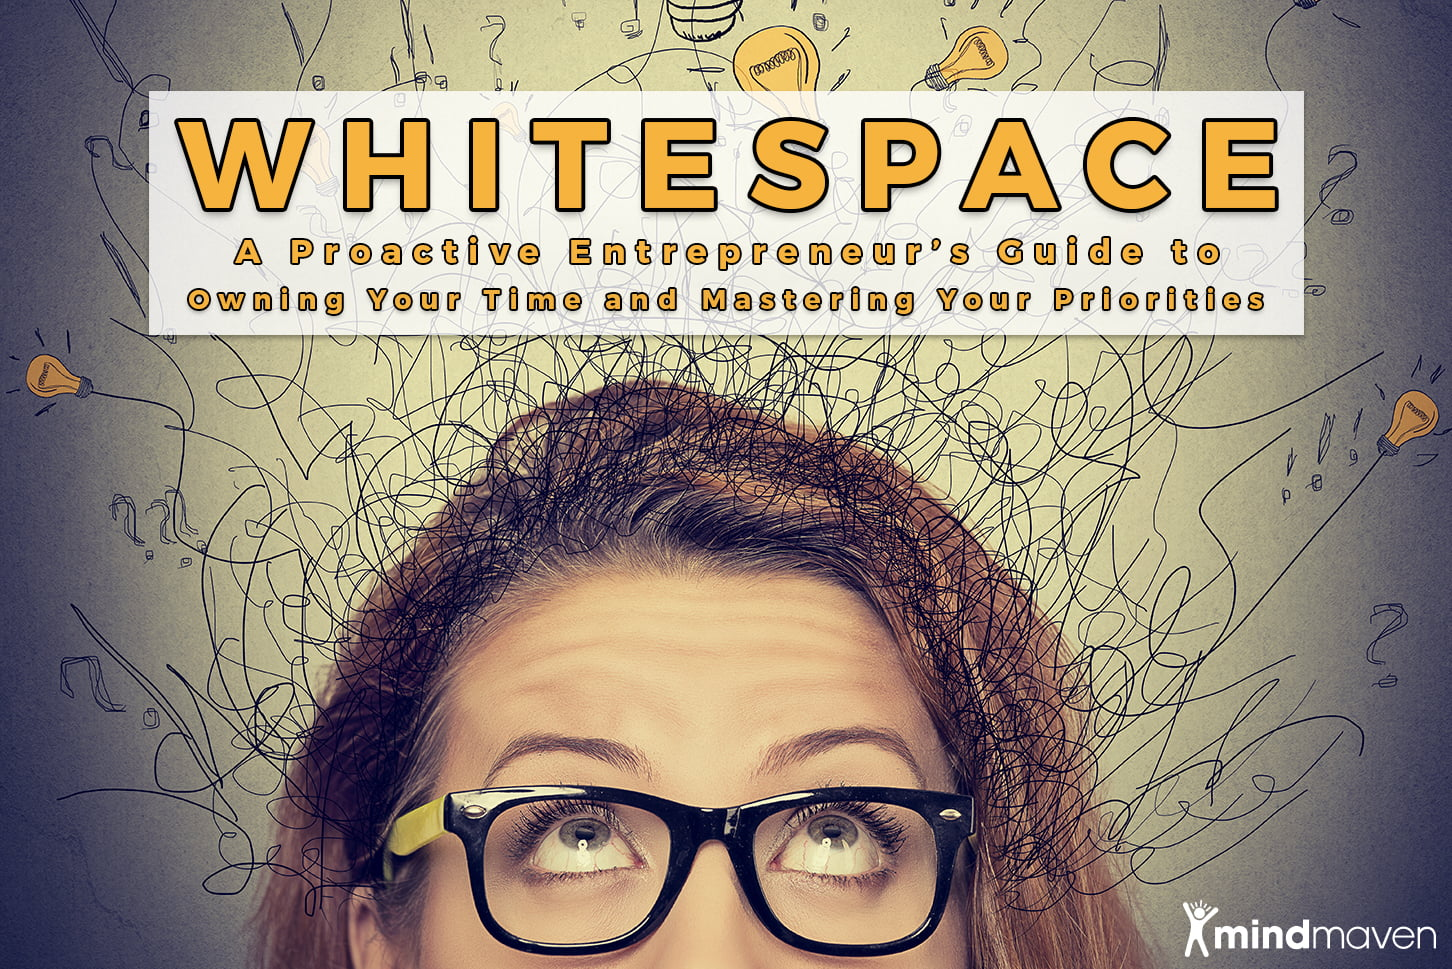 whitespace-featured2